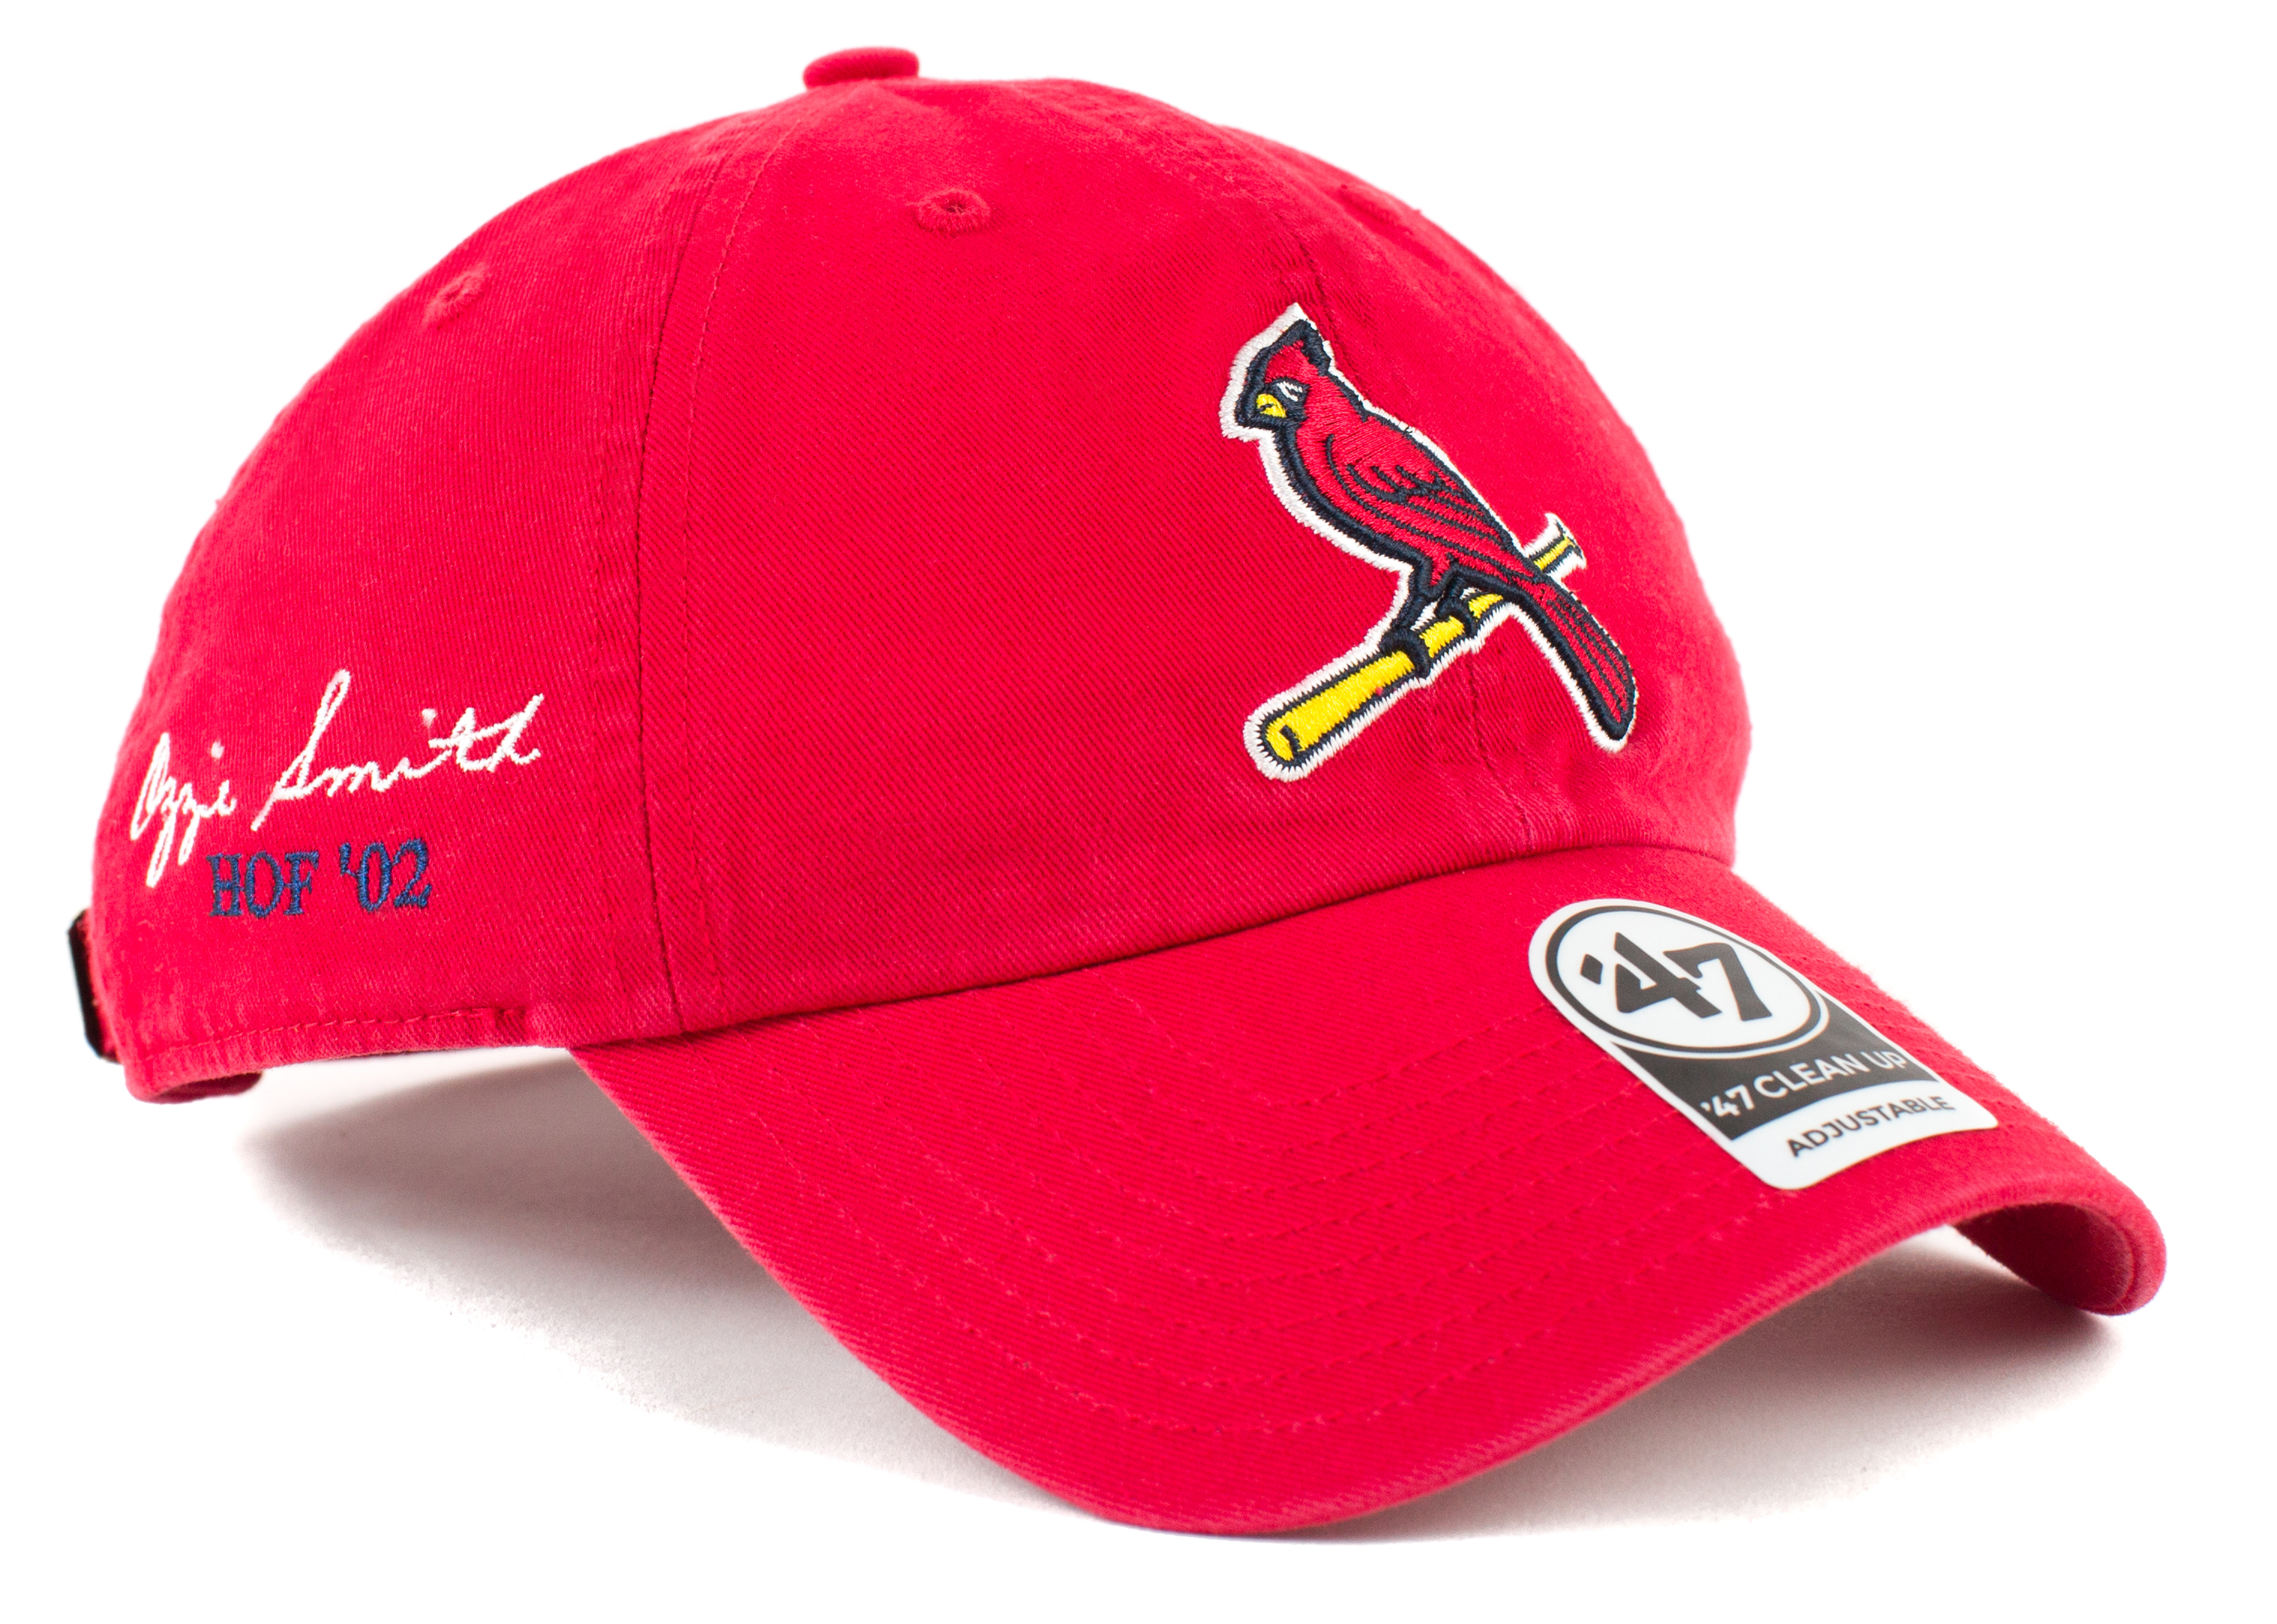 a5ab869e5 MLB Hall Of Fame Athlete Embroidery, Now Available! | Lids® Blog